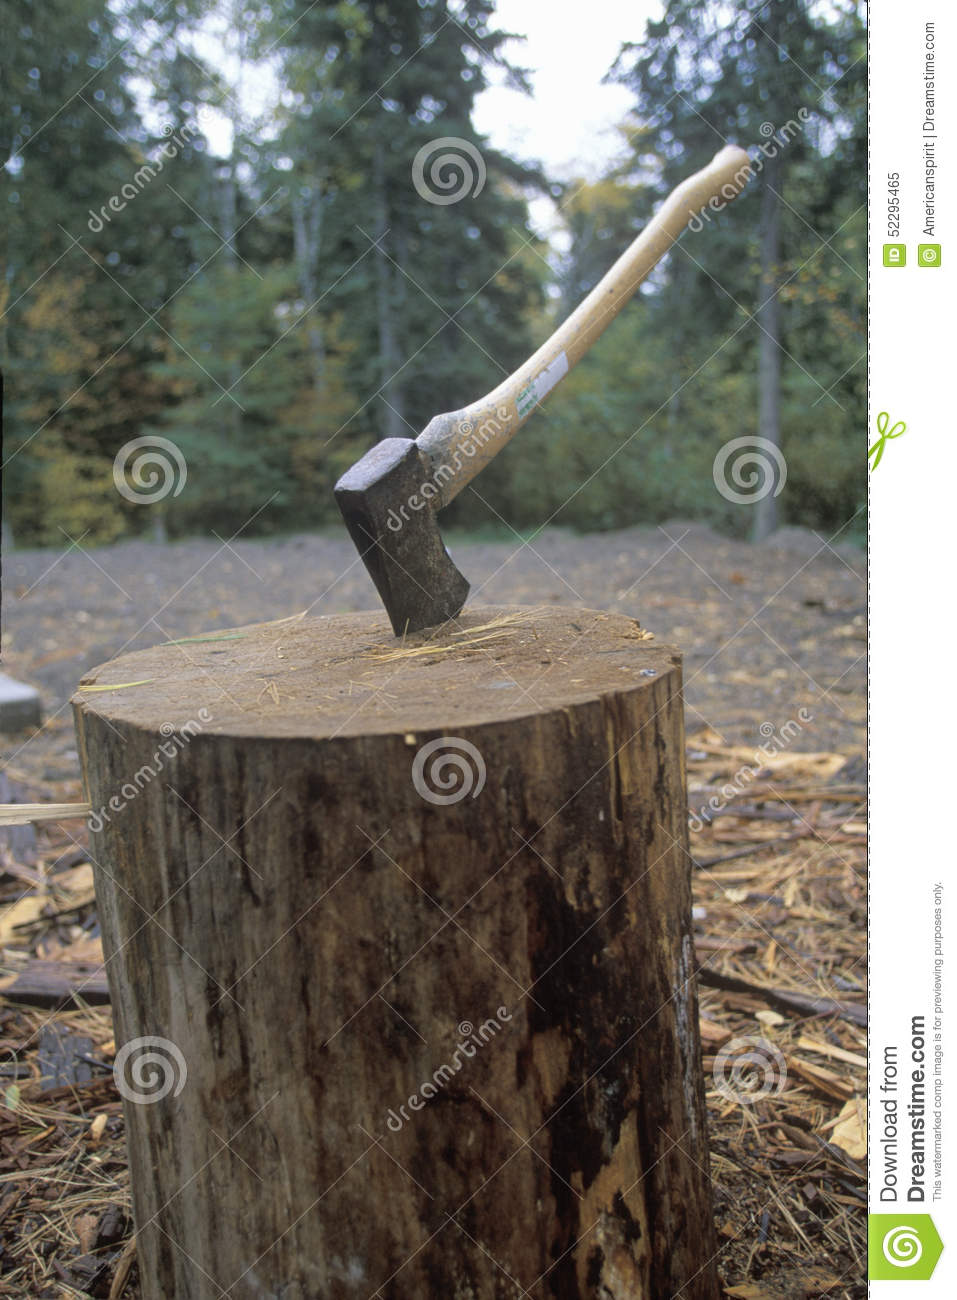 An axe being thrust into a large log in Copper Harbor, Michigan